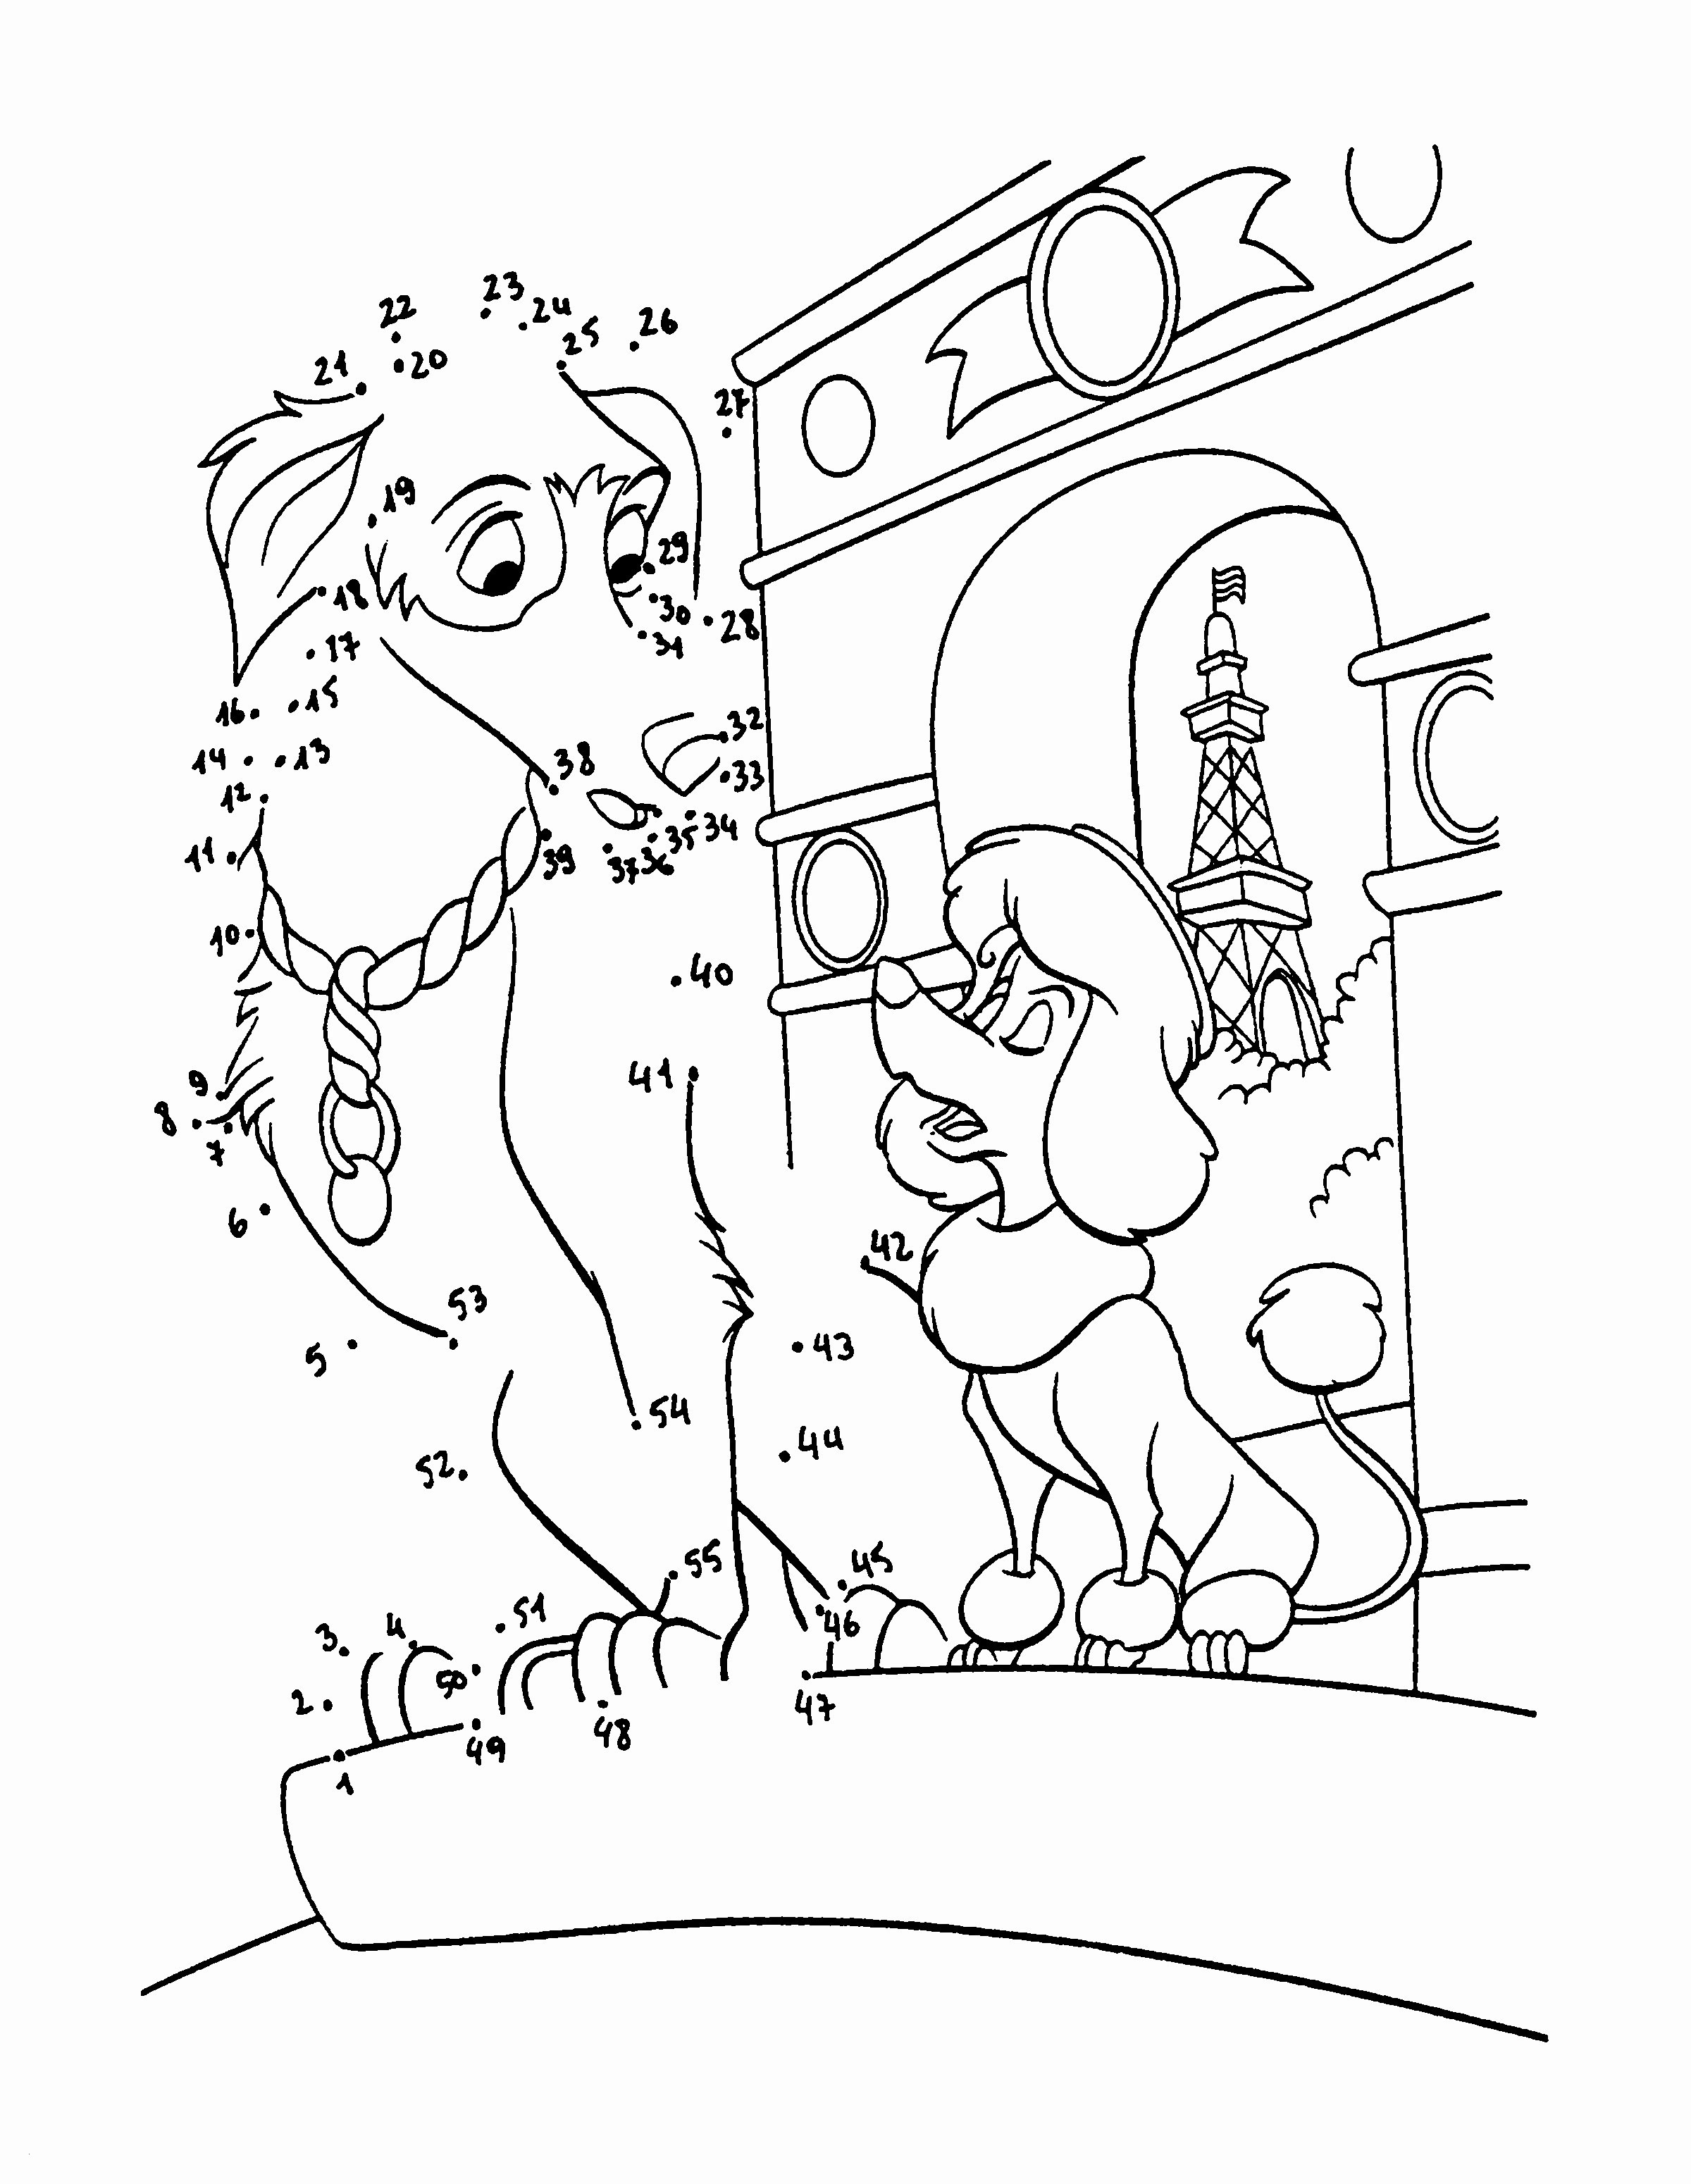 Hiking Coloring Pages  Download 10b - To print for your project